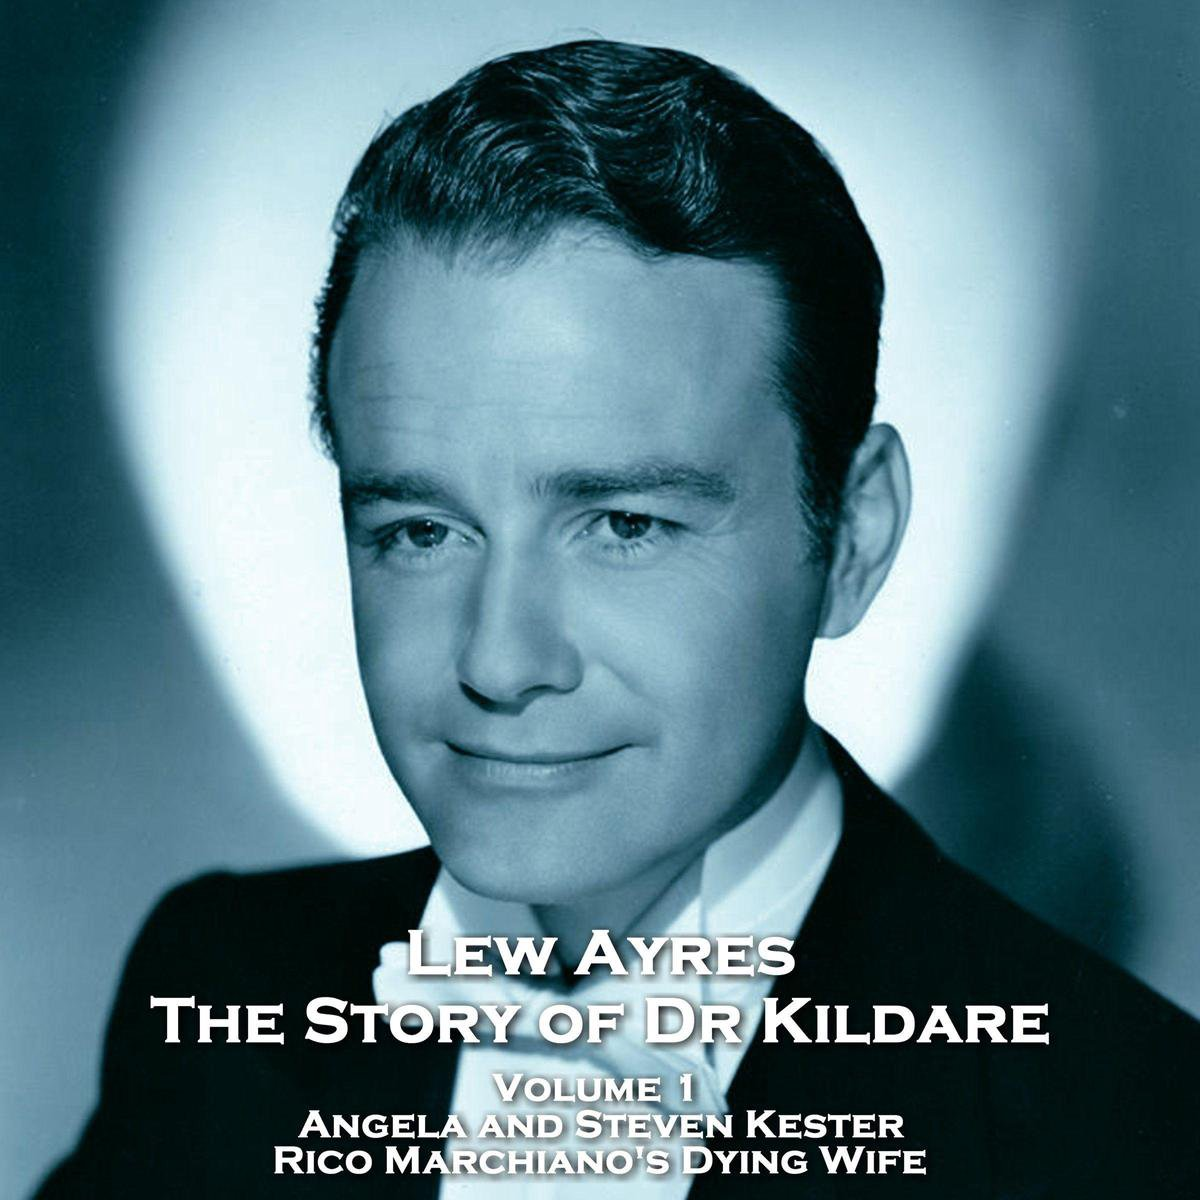 Story of Dr Kildare, The - Volume 1 - Angela and Steven Kester & Rico Marchiano's Dying Wife